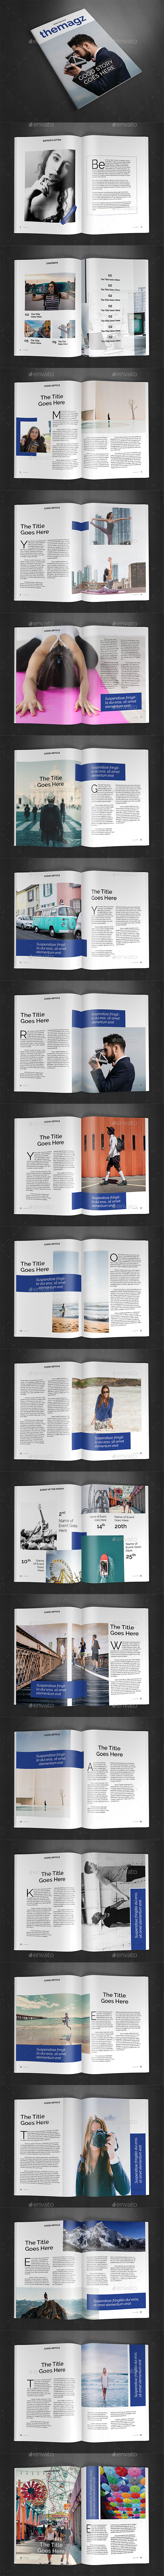 A4 Magazine Template Vol.27 - Magazines Print Templates